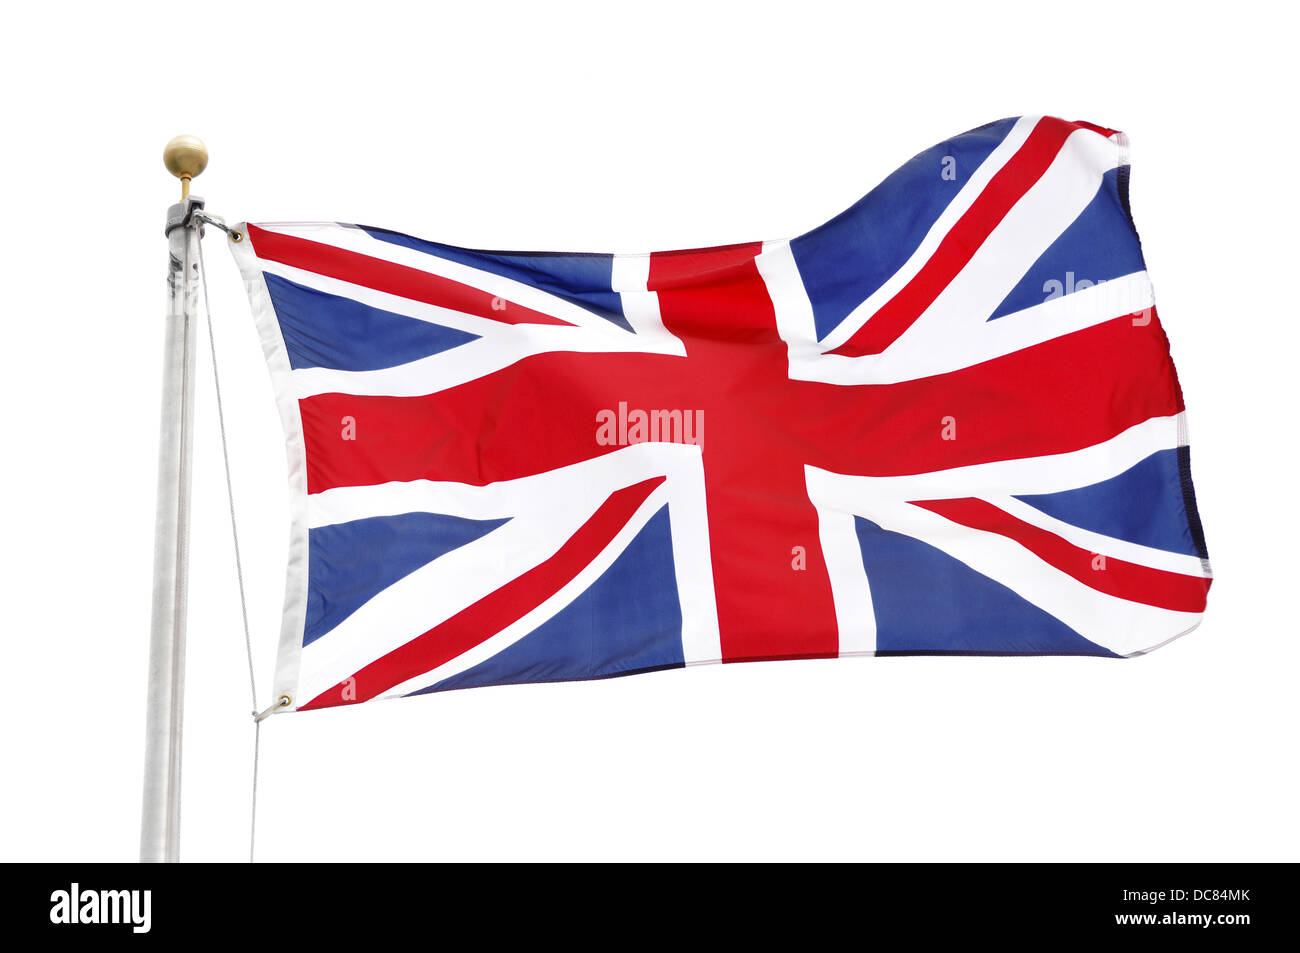 Union Jack Flag of the United Kingdom isolated on a white background - Stock Image